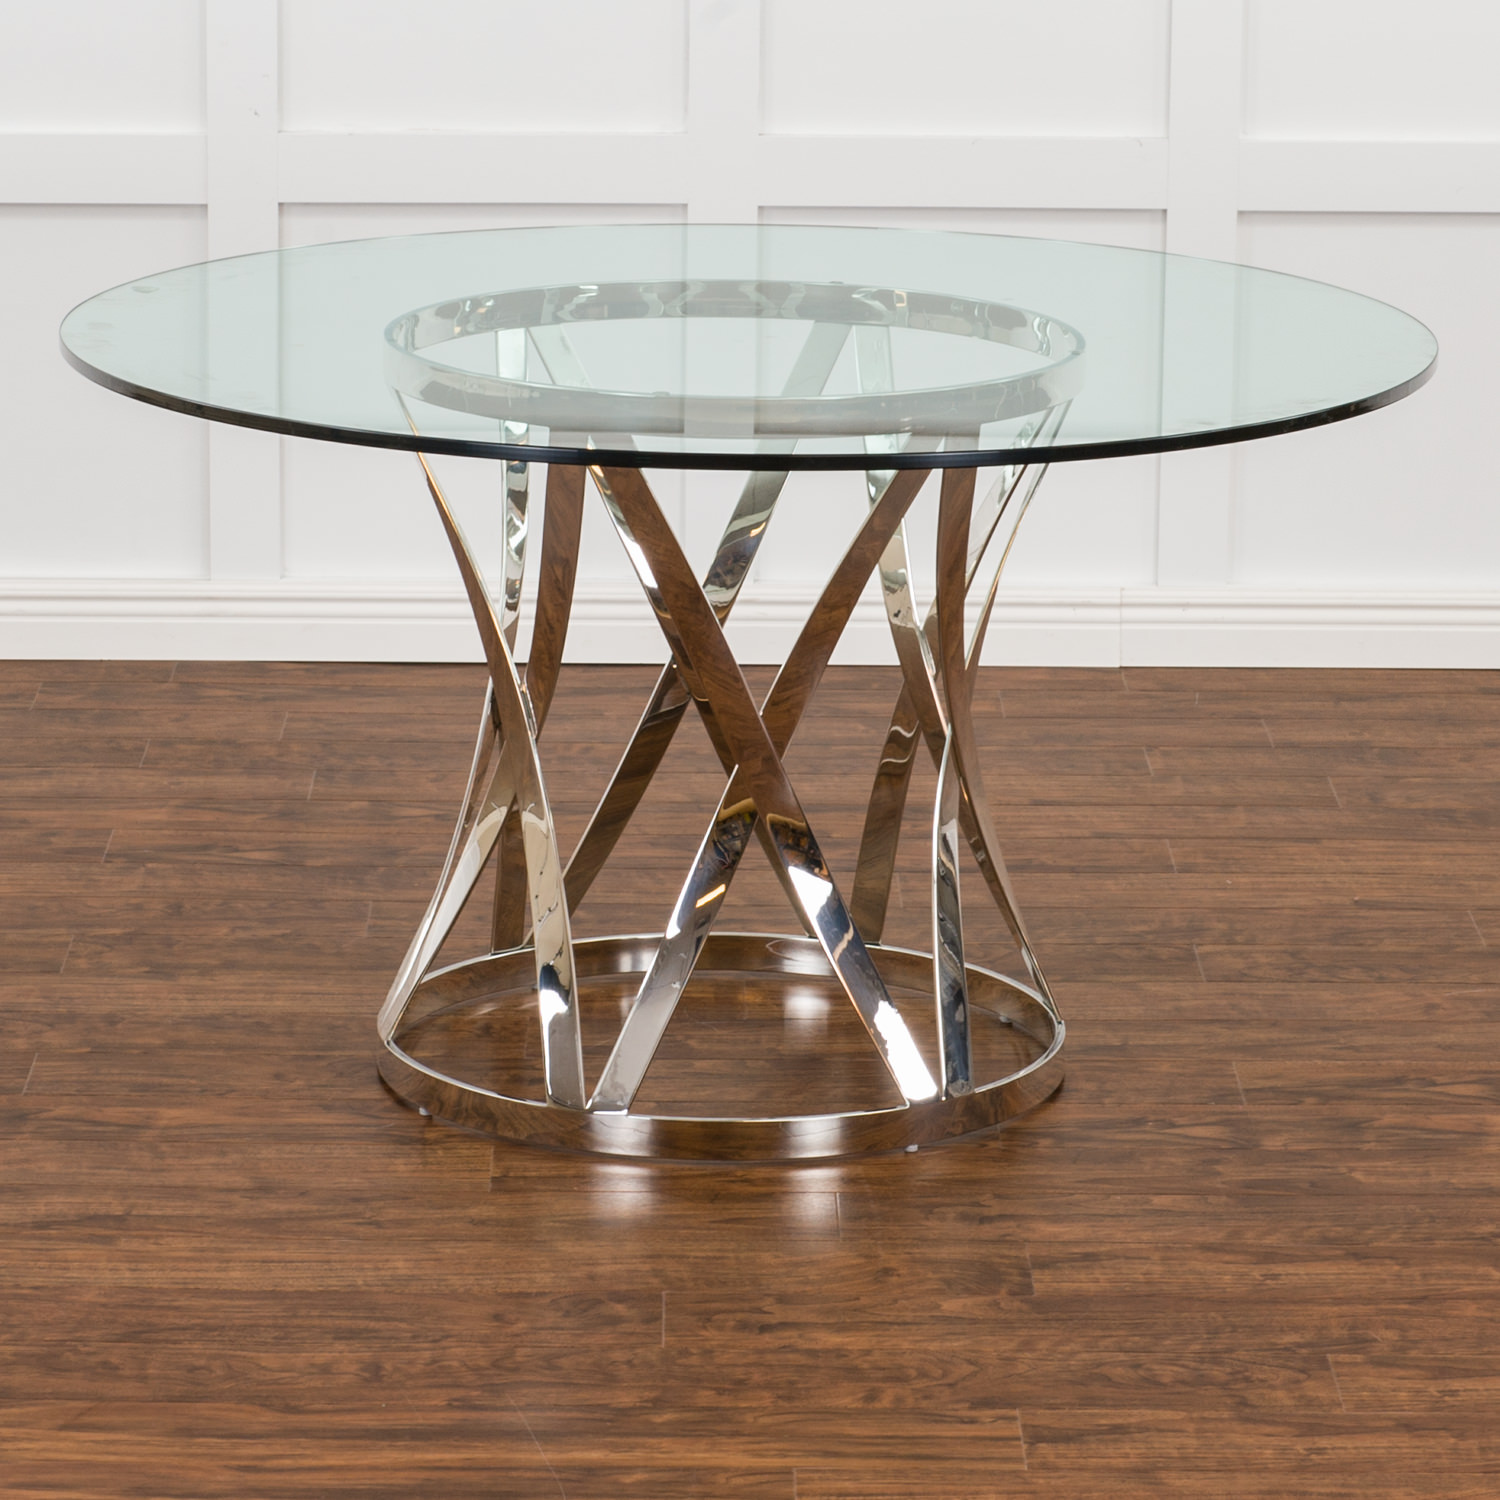 dining table is a stunning glass dining room table since this table